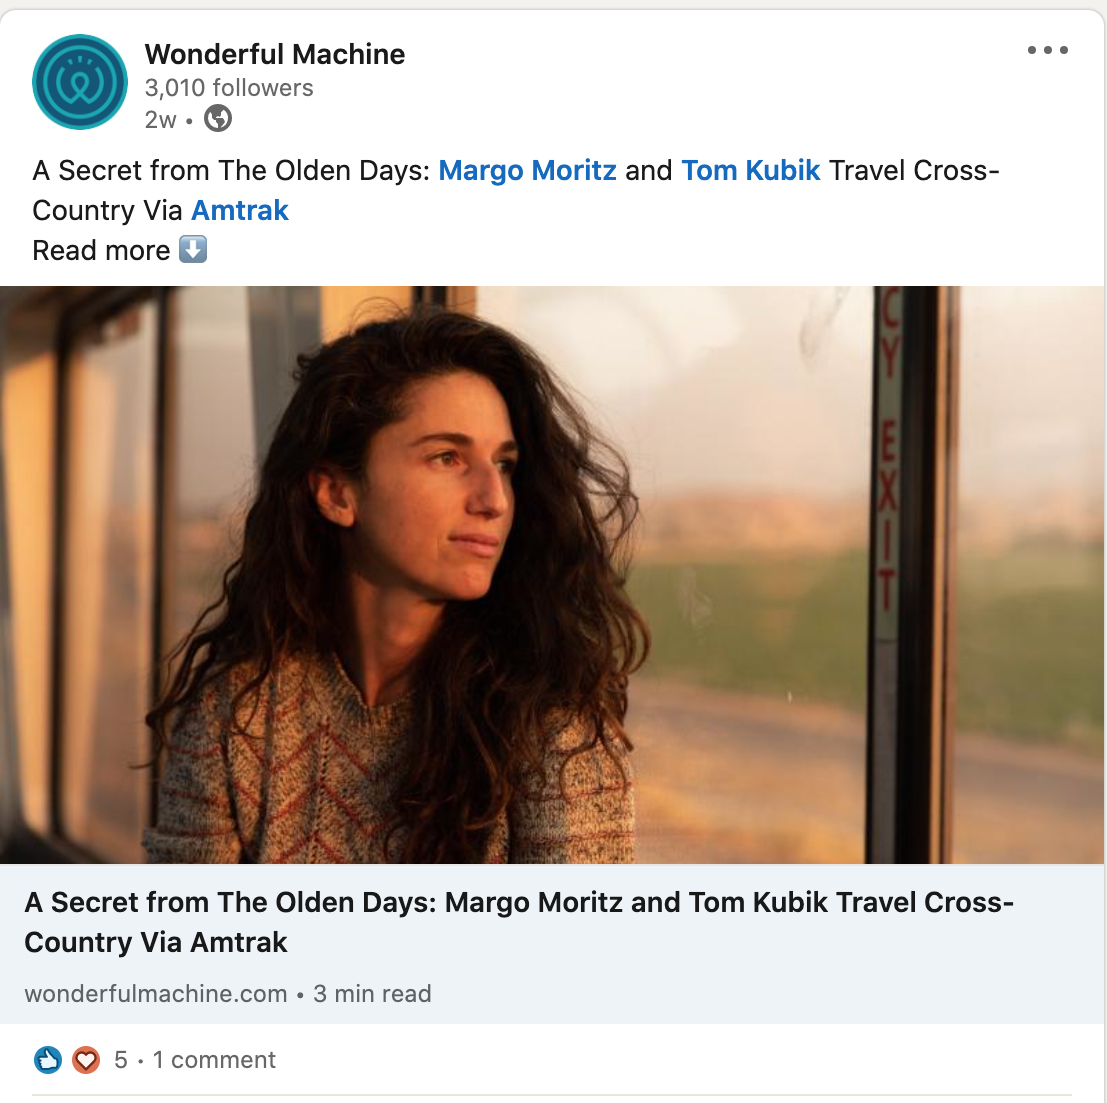 Margo Moritz's LinkedIn post about her cross country travels via train